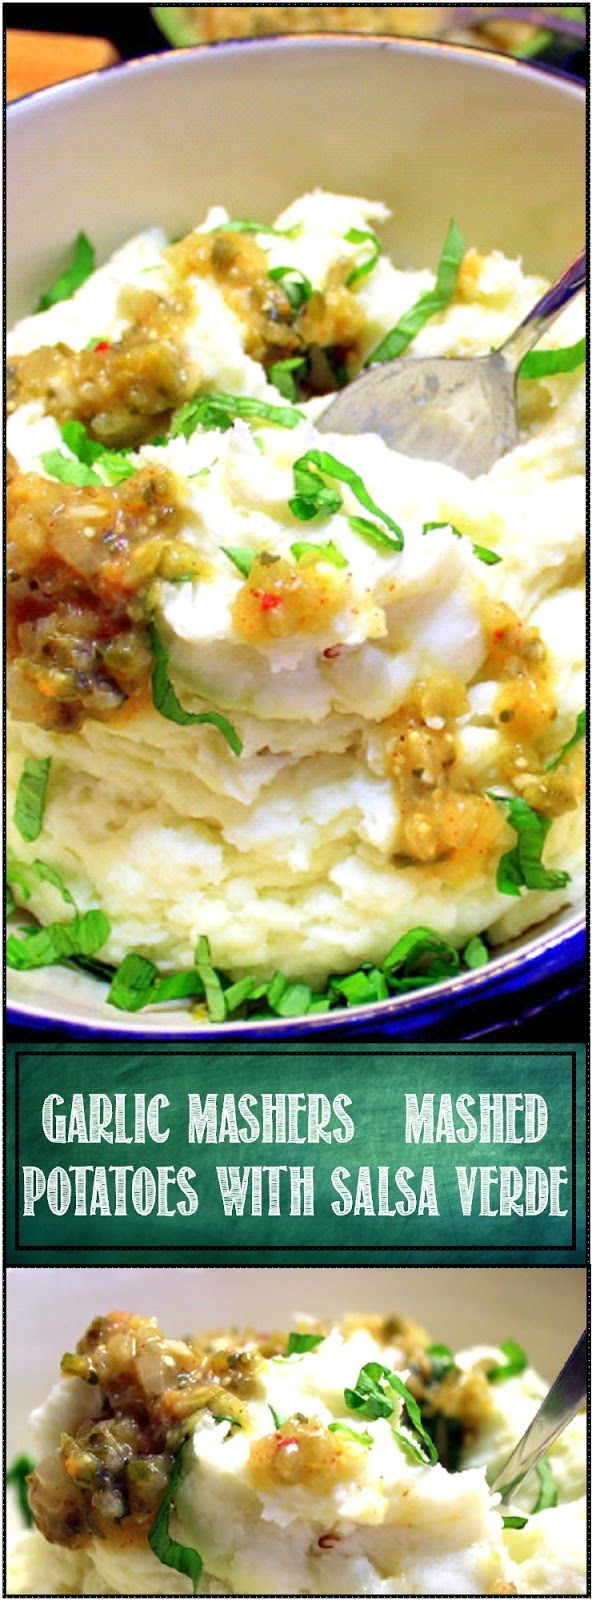 Garlic Mashers (Mashed Potatoes) with Salsa Verde - 52 Holiday Side DIshes... THIS IS MY NEW OBSESSION. The BEST Mashed potatoes ever and too good to just make for company. The post contains a recipe for garlic Mashed Potatoes PLUS a recipe for a tangy slightly sweet rustic tasting Salsa verde that combines with the potatoes to make something special. Dare I say WORLDS BEST... You bet!